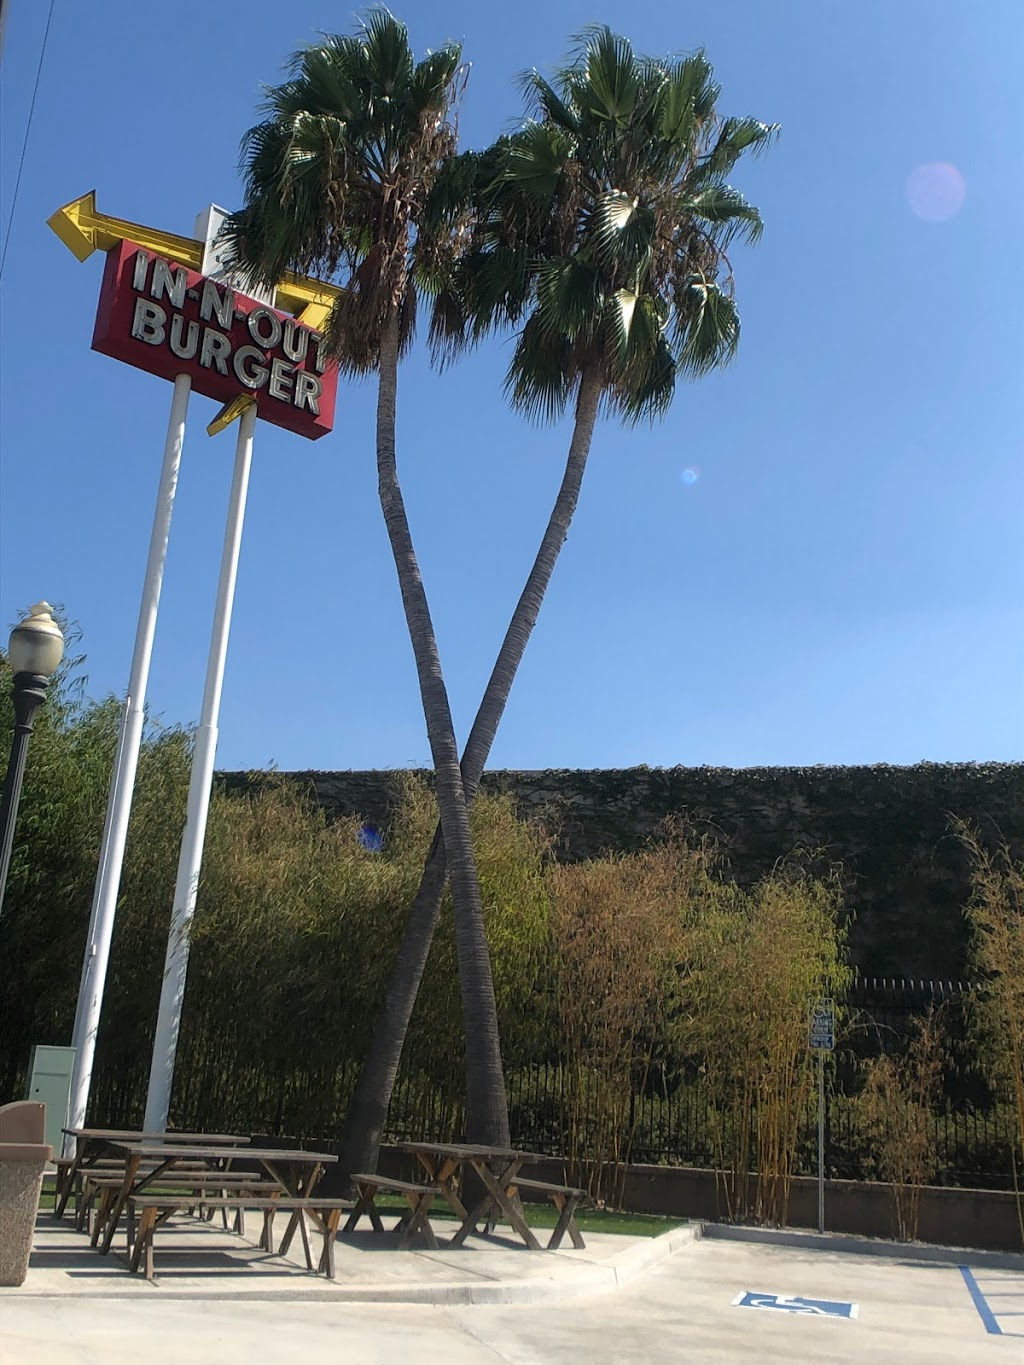 The Original In-N-Out Burger Museum - museum  | Photo 5 of 10 | Address: 13766 Francisquito Ave, Baldwin Park, CA 91706, USA | Phone: (800) 786-1000